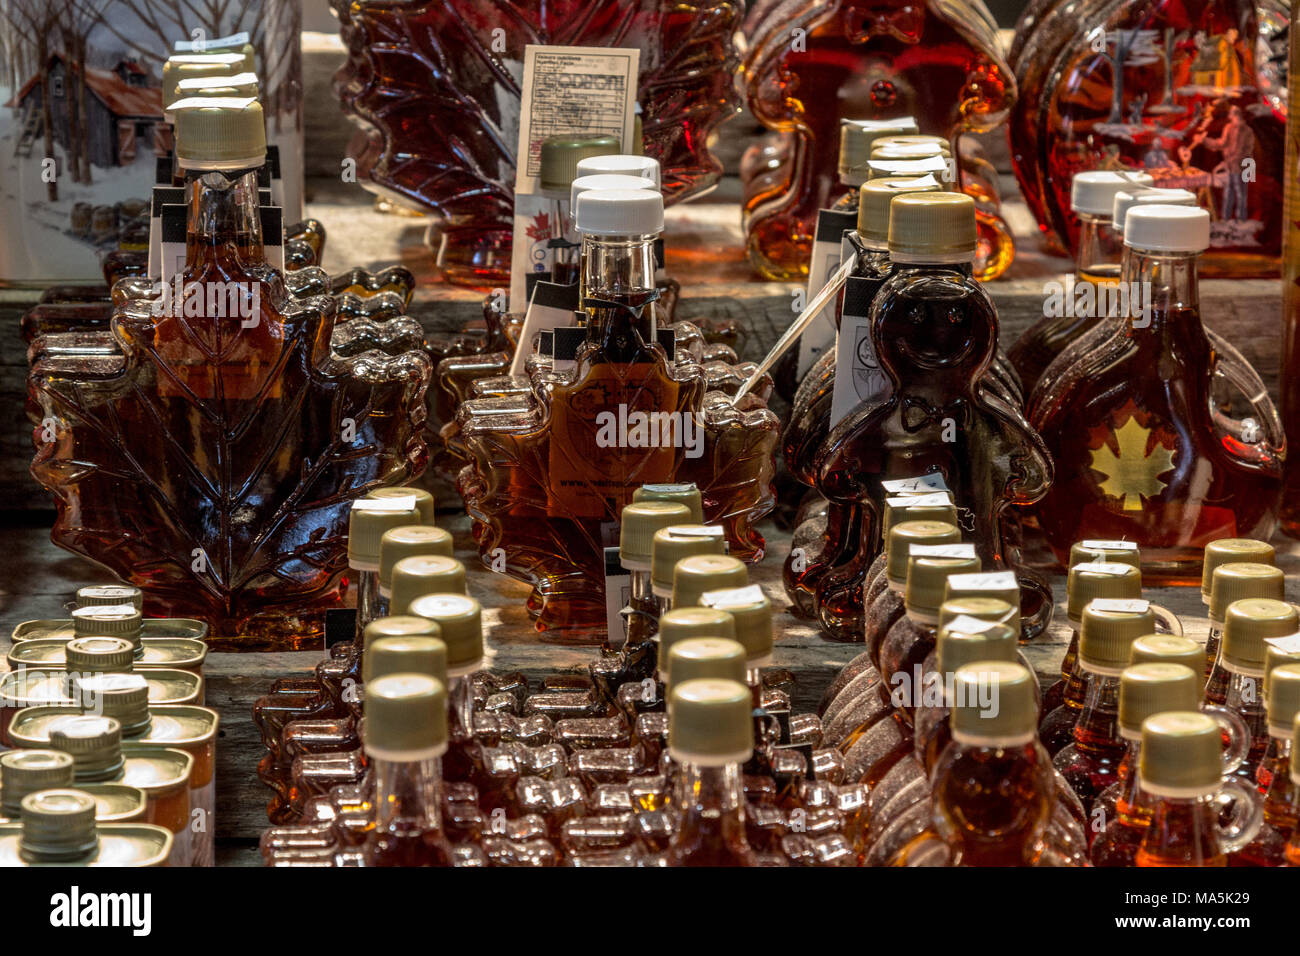 QUEBEC, CANADA - DECEMBER 26, 2016: Maple Syrup bottles for sale on Quebec city market. Quebec is the highest producer of Maple syrup in the world, a  - Stock Image